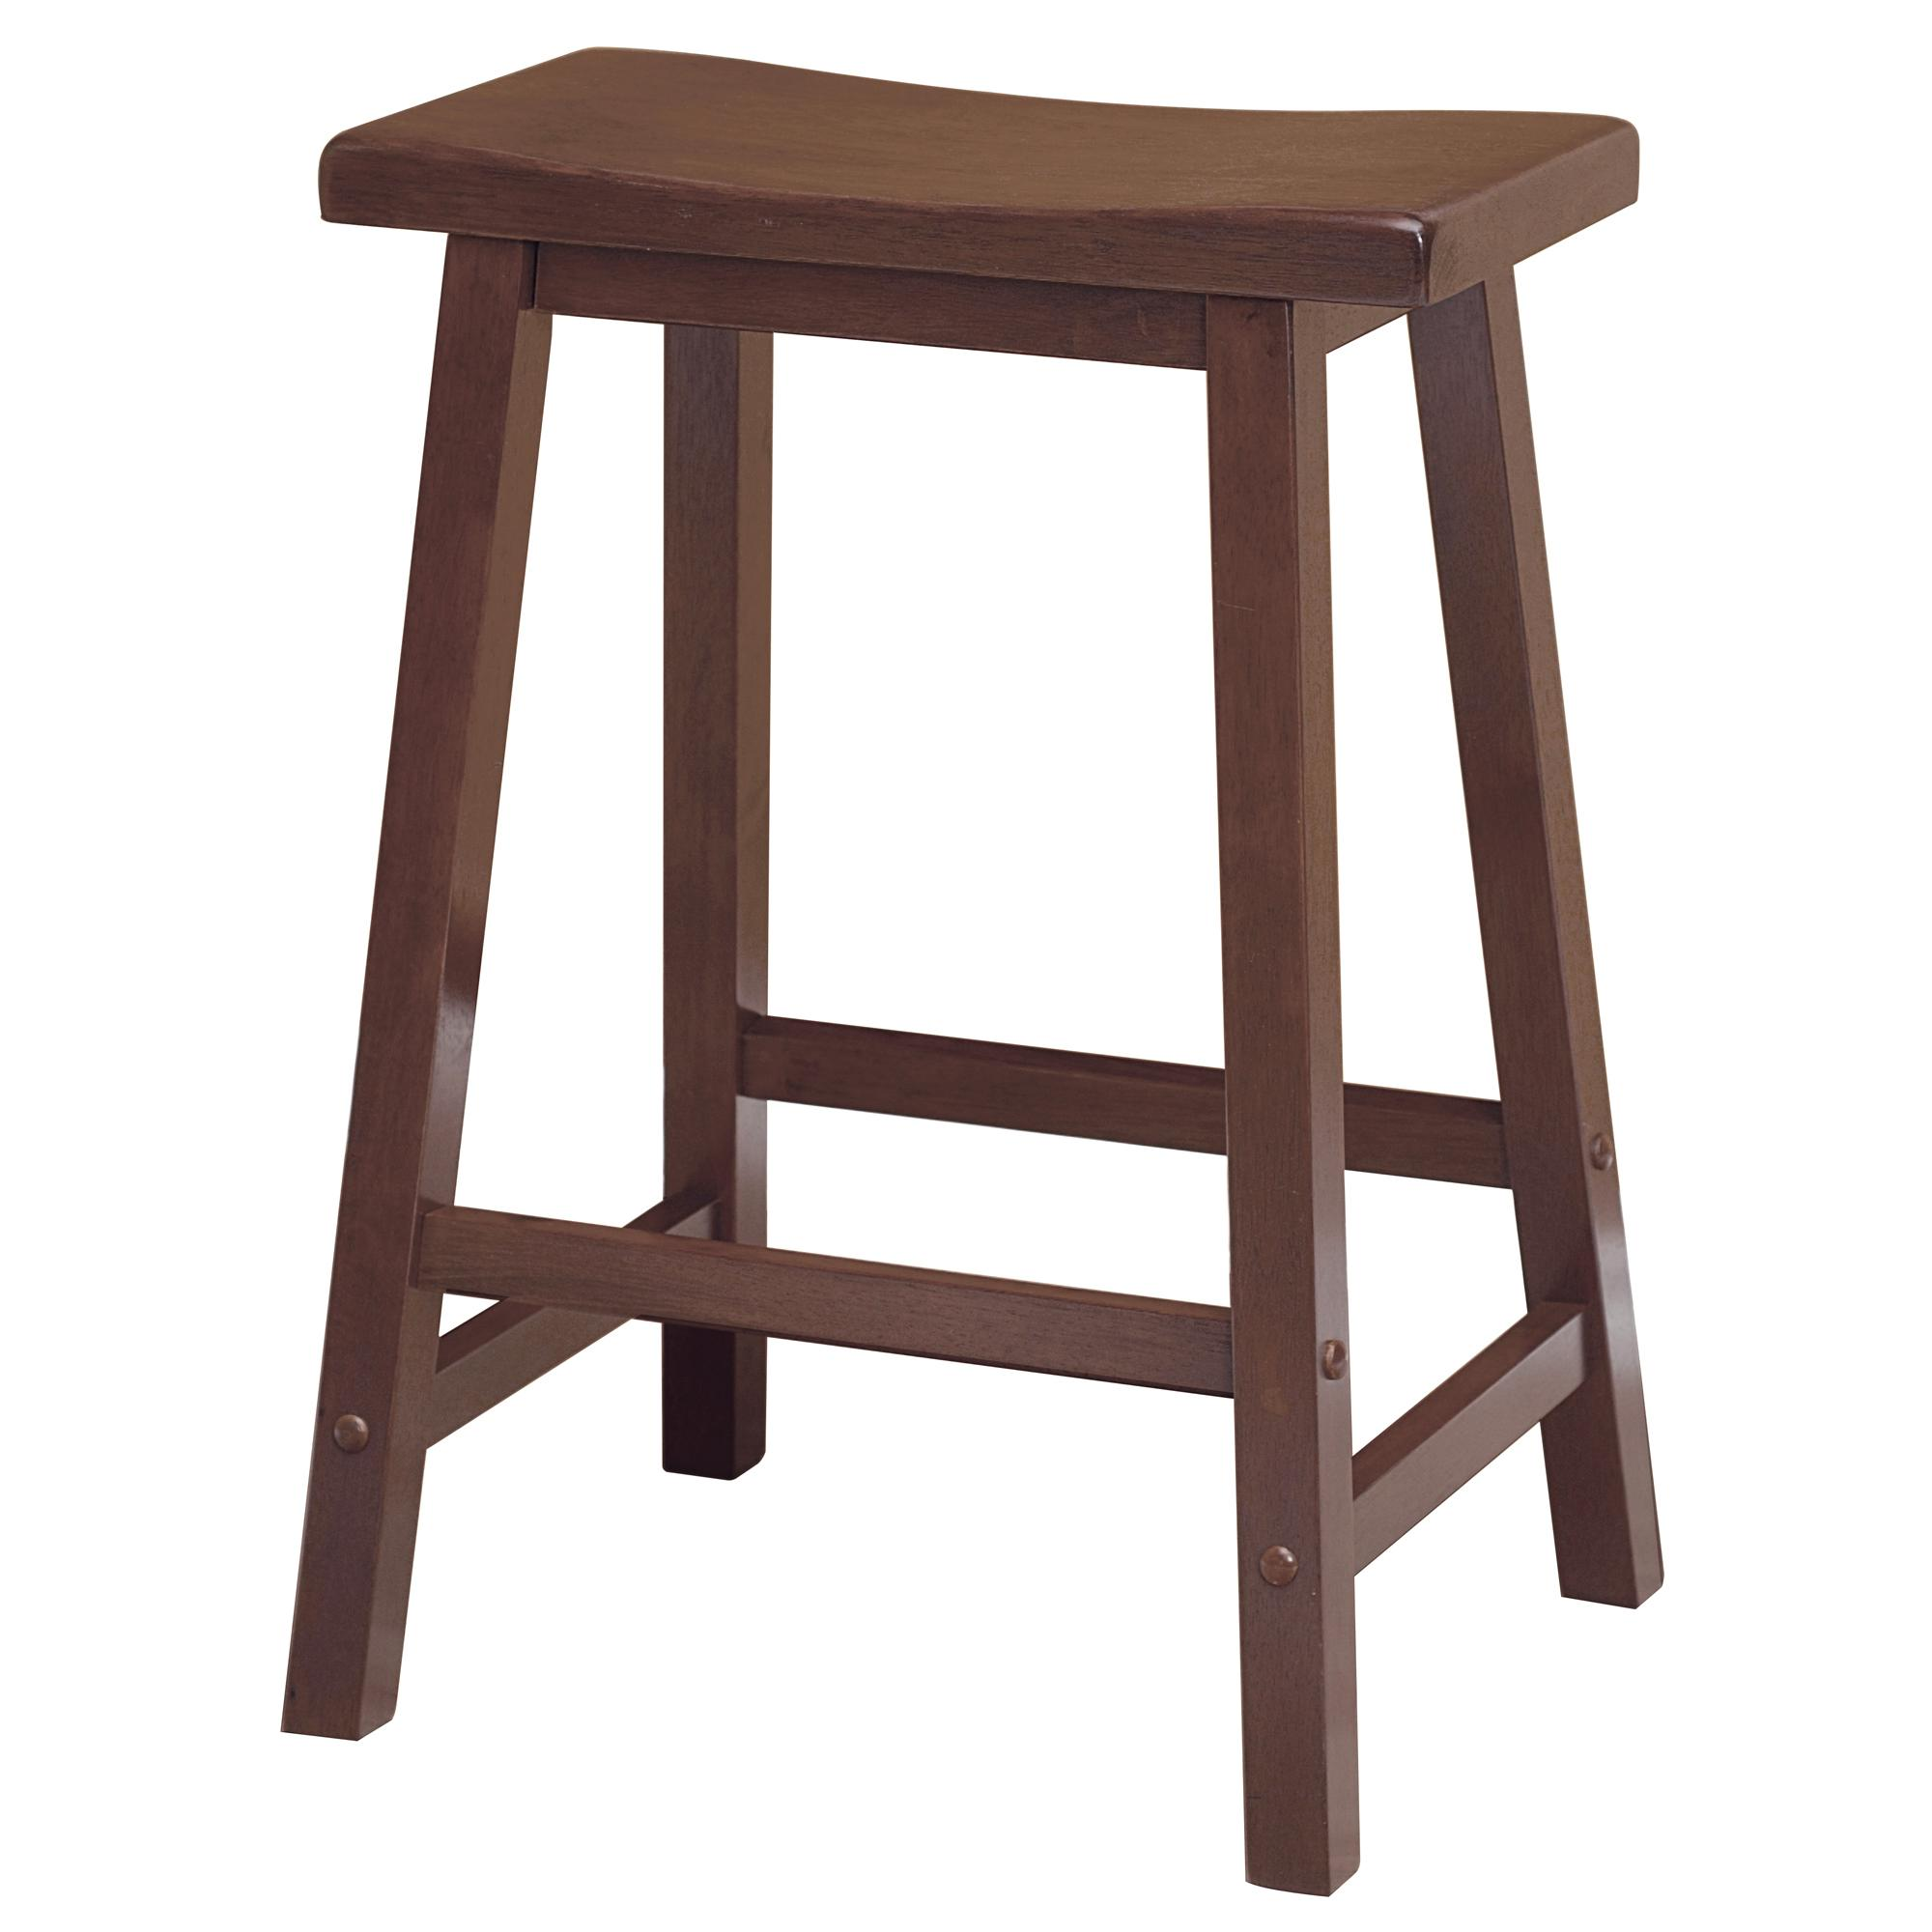 Winsome Saddle Seat 24-Inch Counter Stool Walnut  sc 1 st  Amazon.com & Bar Stools | Amazon.com islam-shia.org